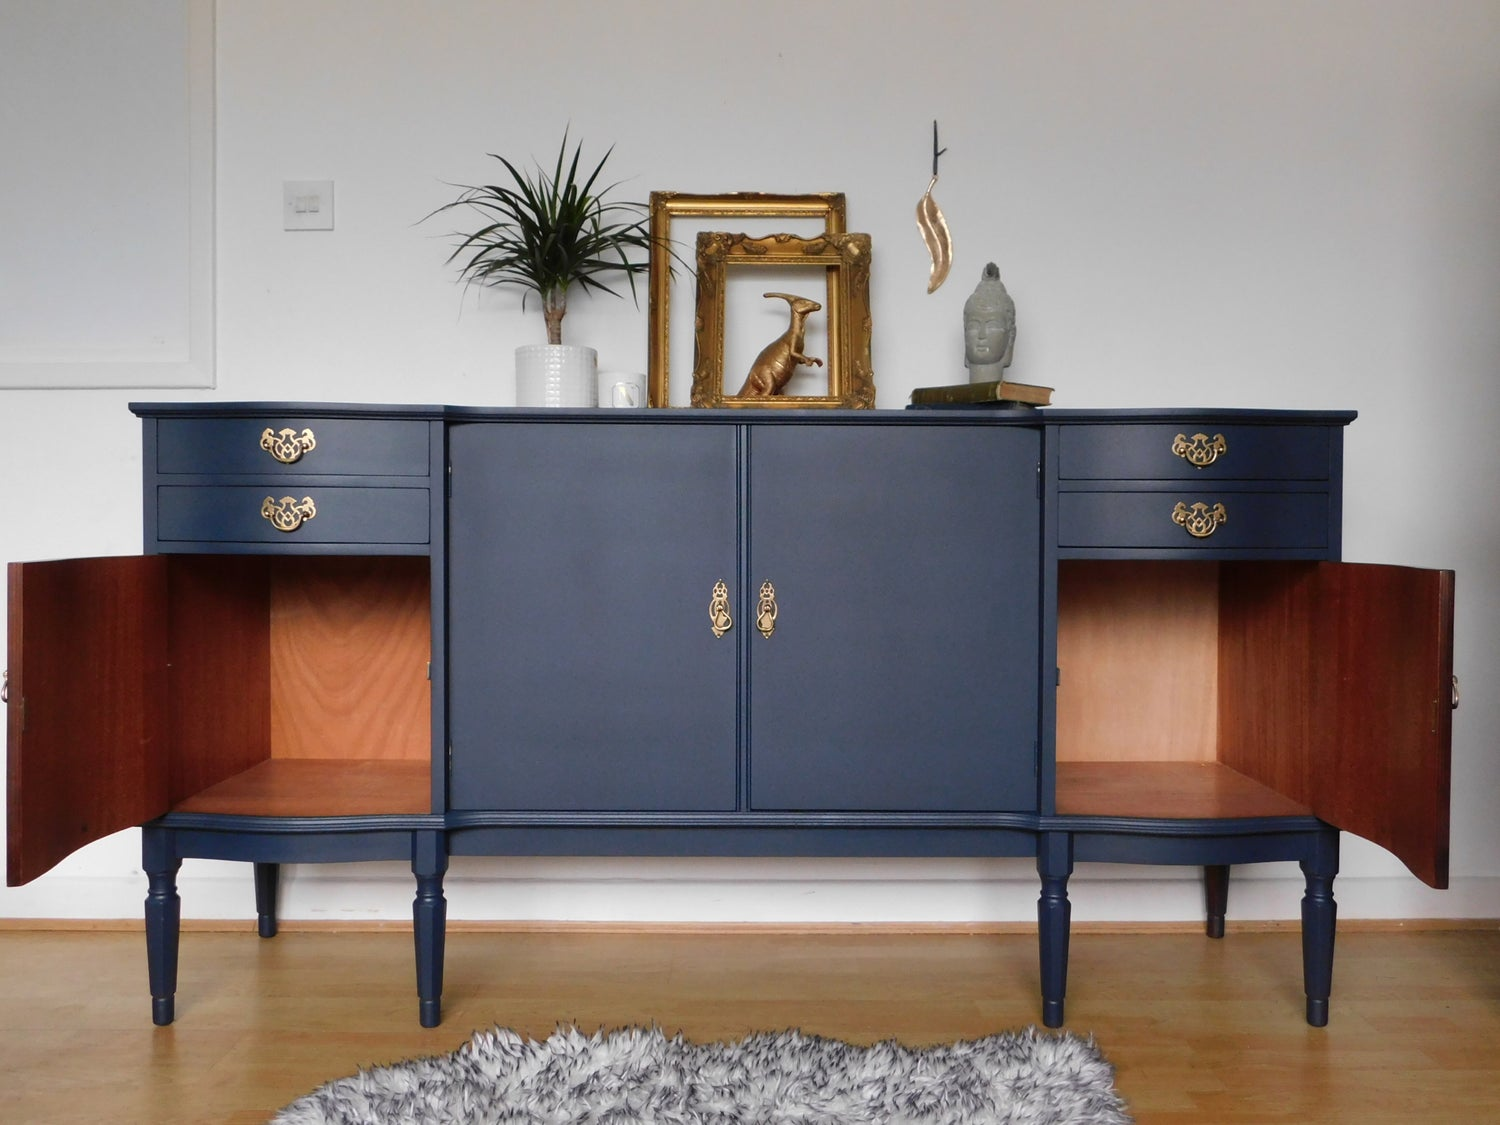 Image of A dark blue wooden sideboard